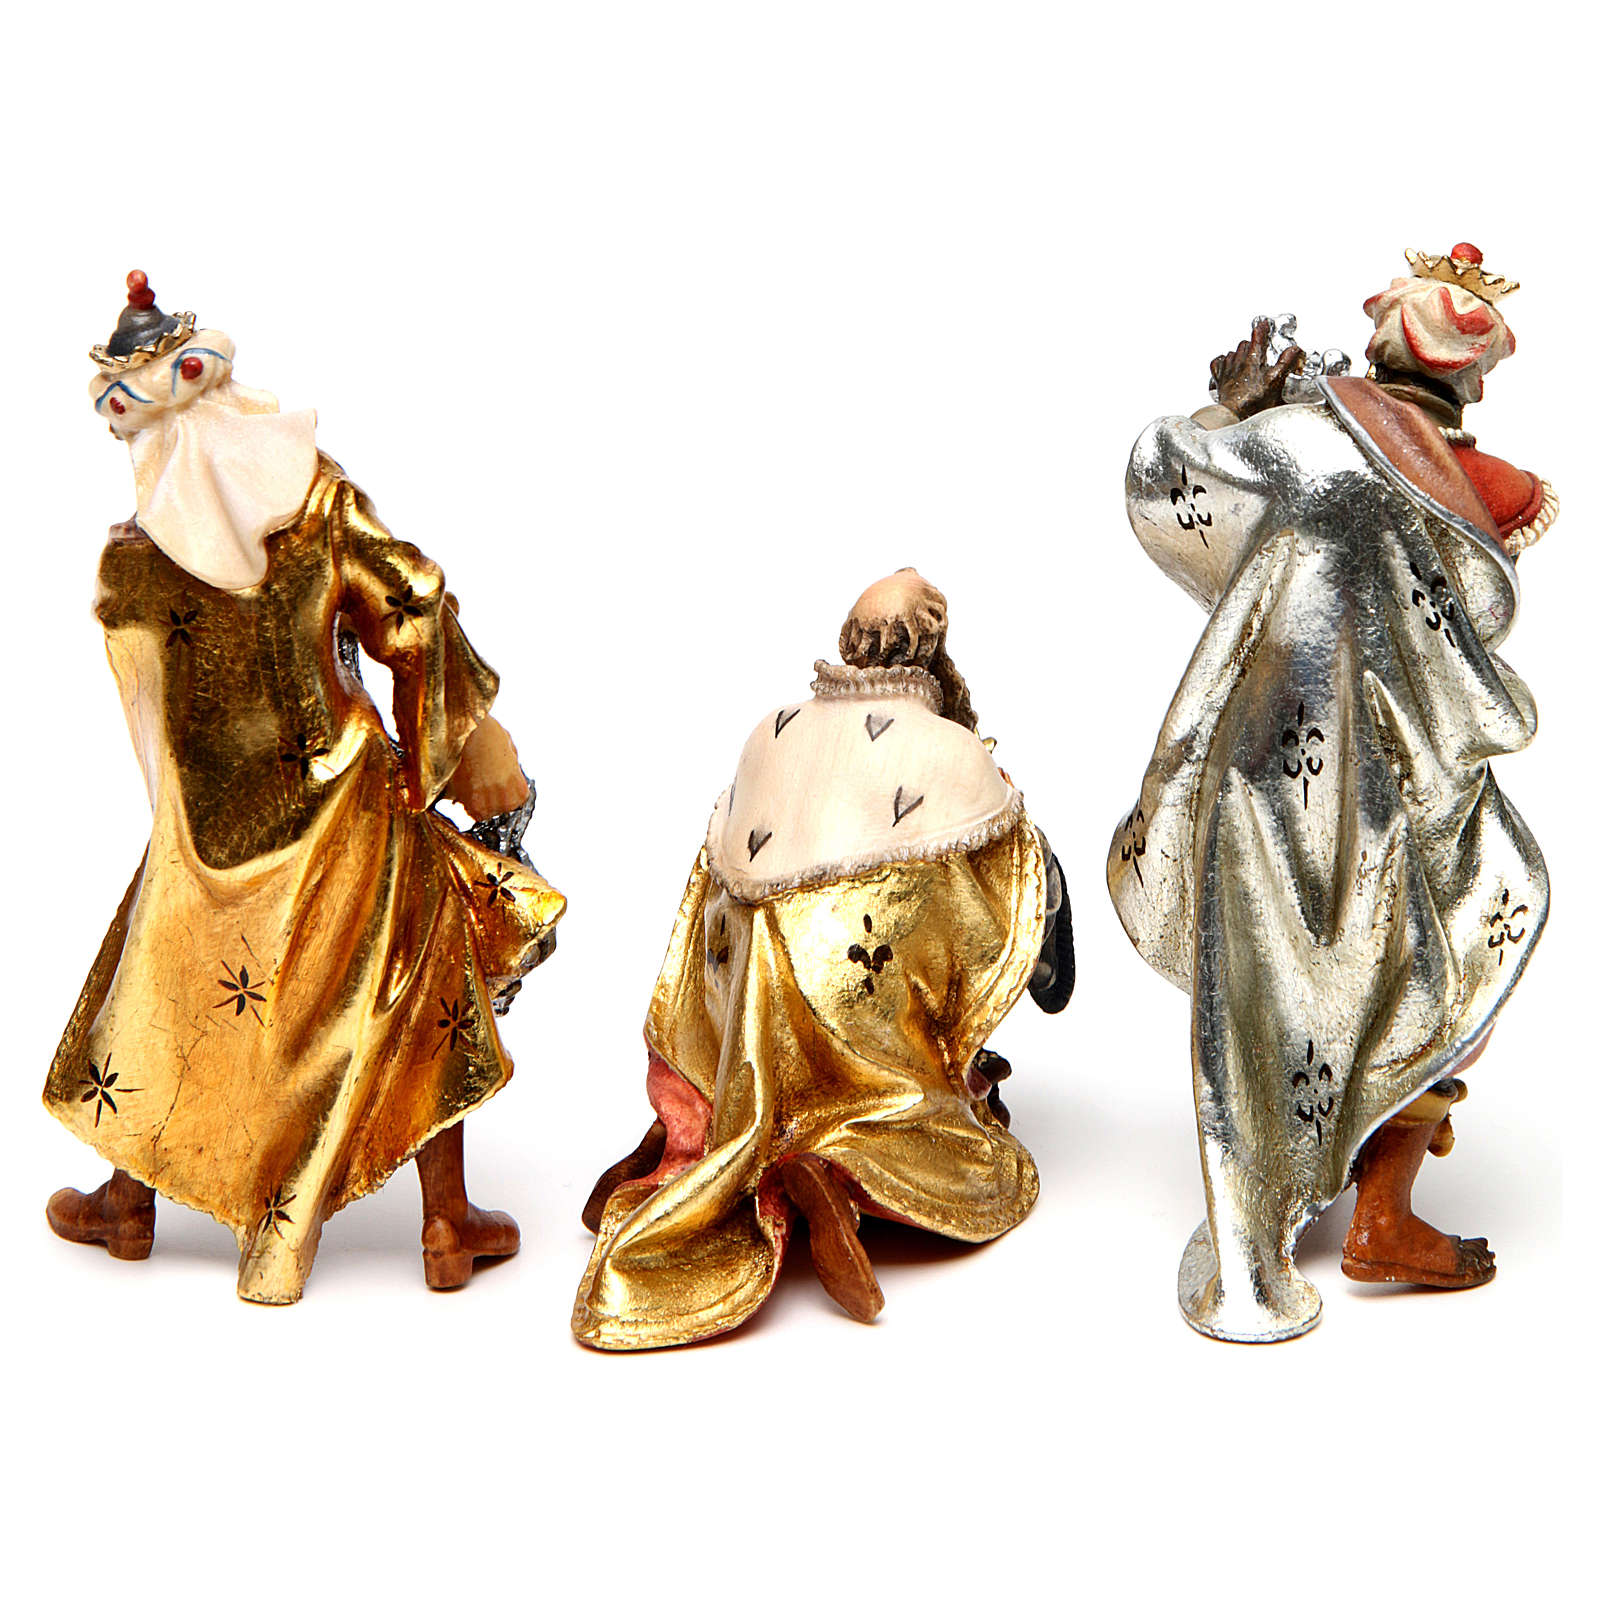 Three Wise Men Original Nativity Scene in painted wood from Val Gardena 10 cm 4